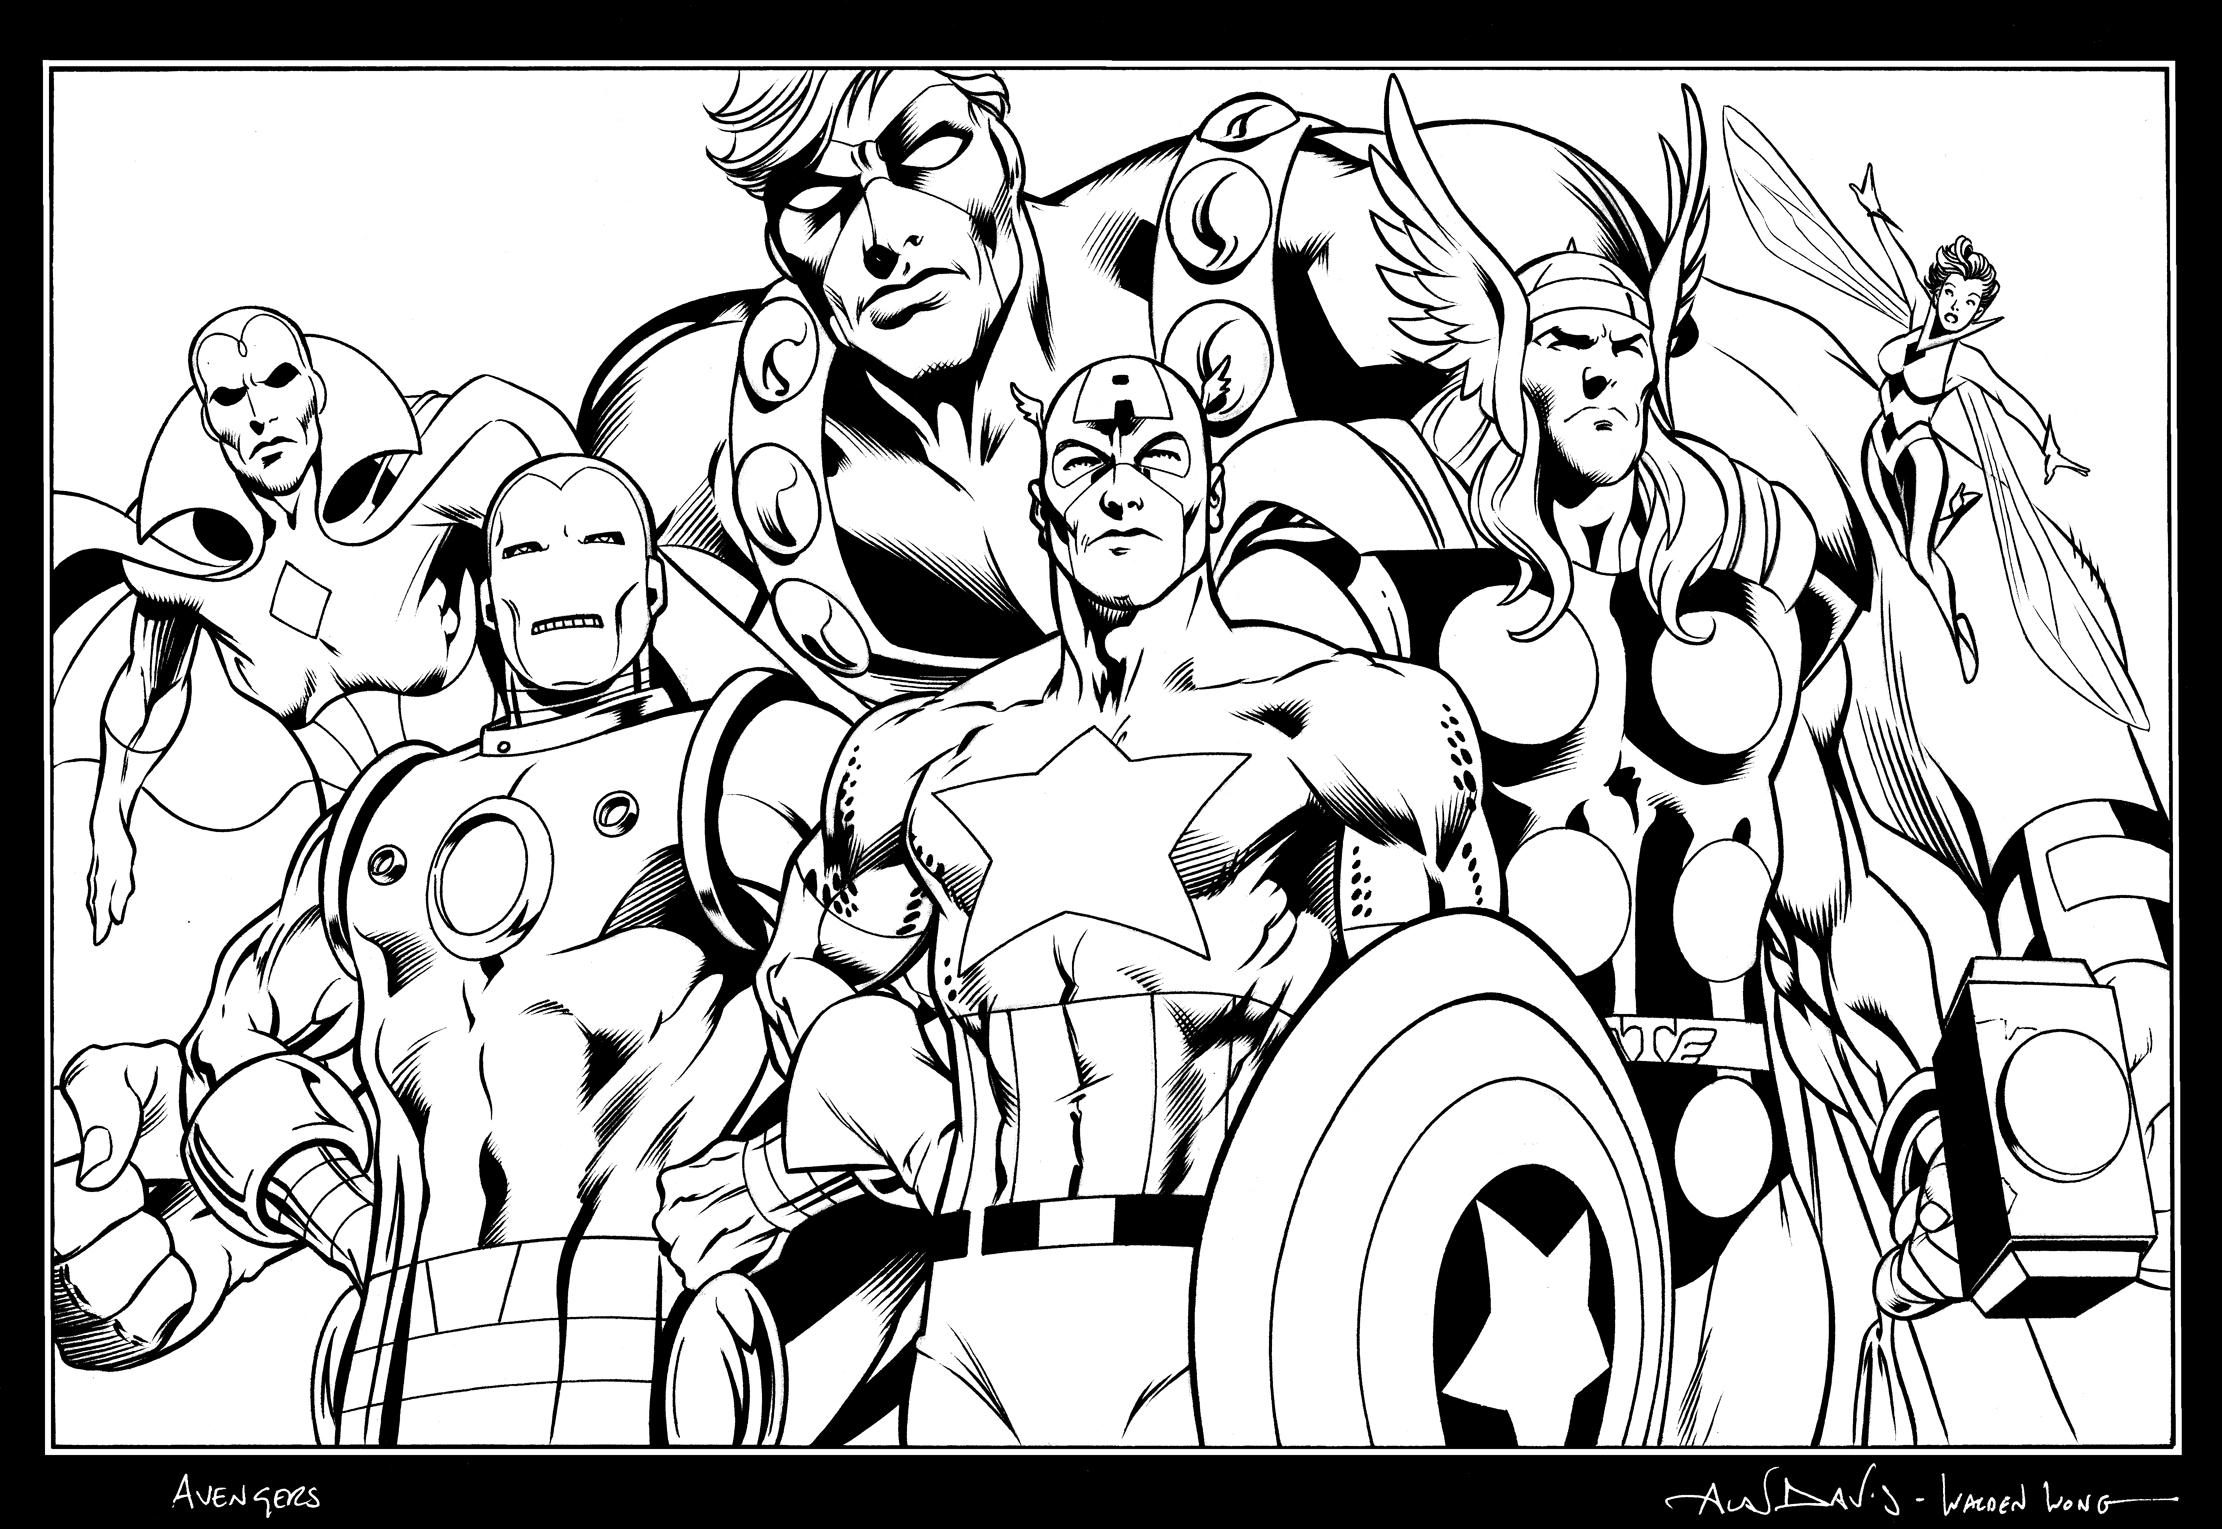 Avengers by waldenwong on deviantart for Coloring pages of the avengers